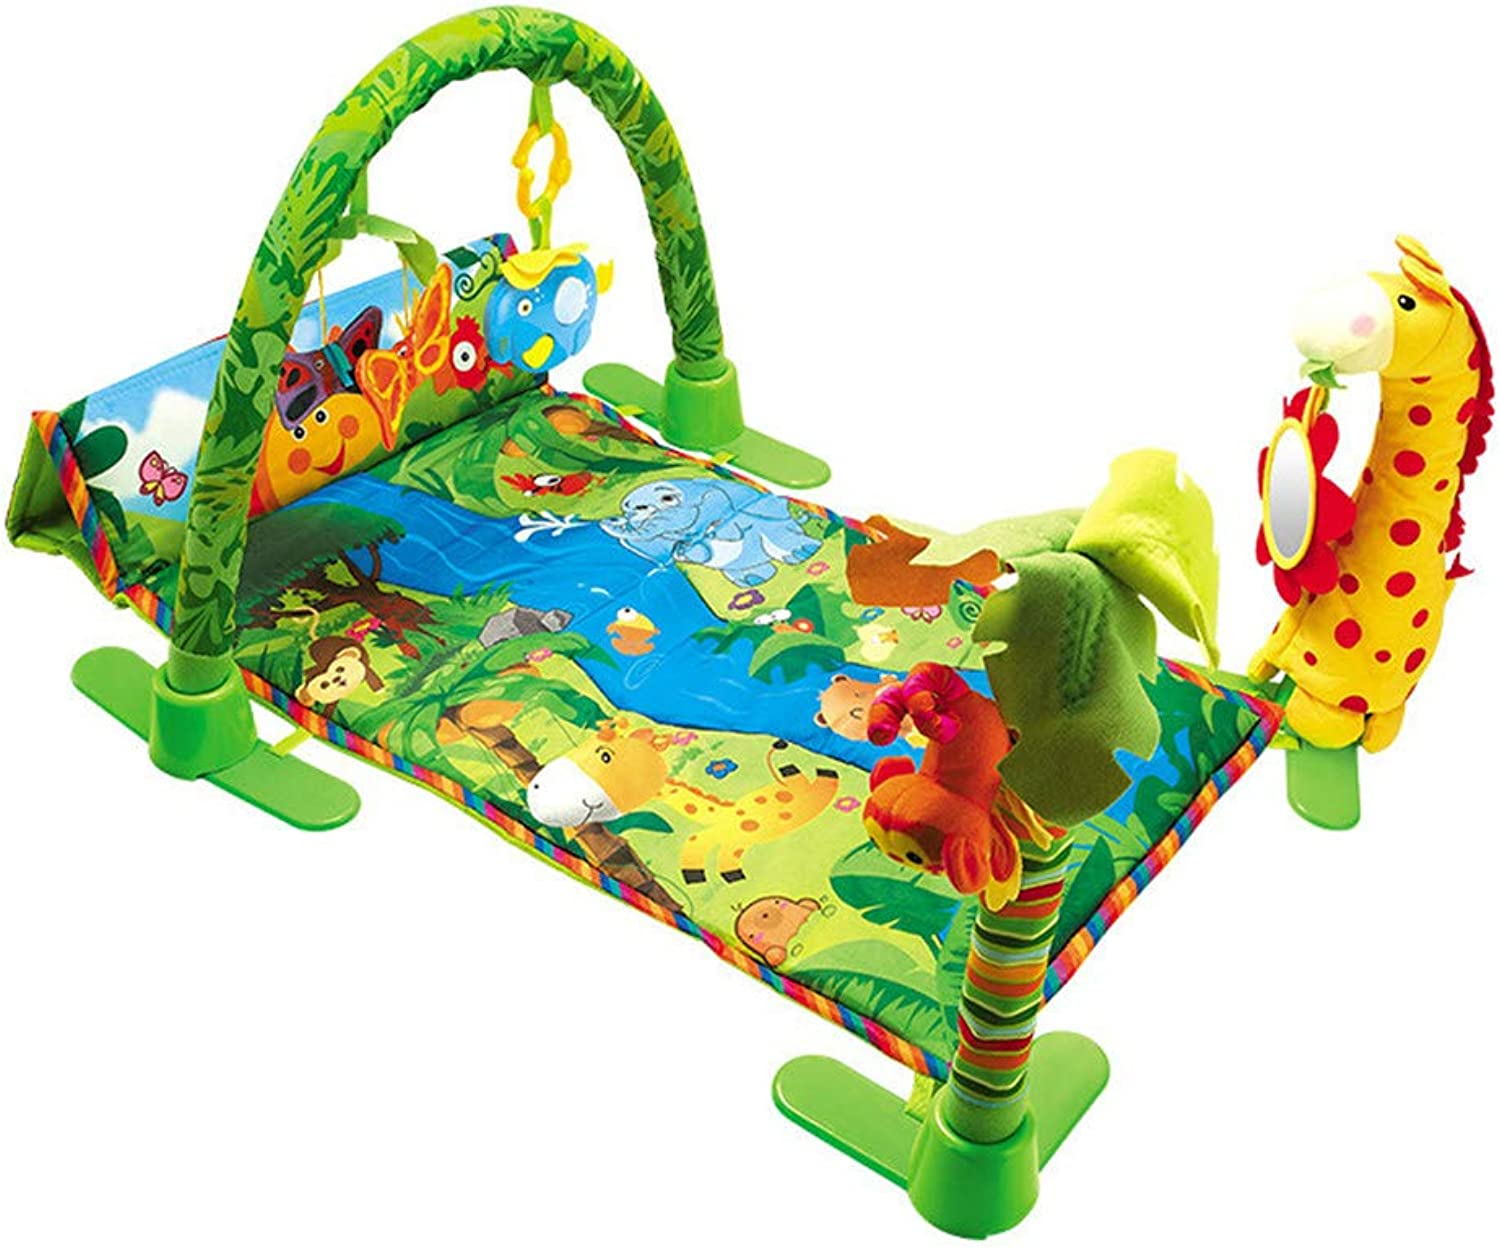 Baby Play Mat Gym With Music And Lights Activity Rug Suitable Newborns Play Blanket